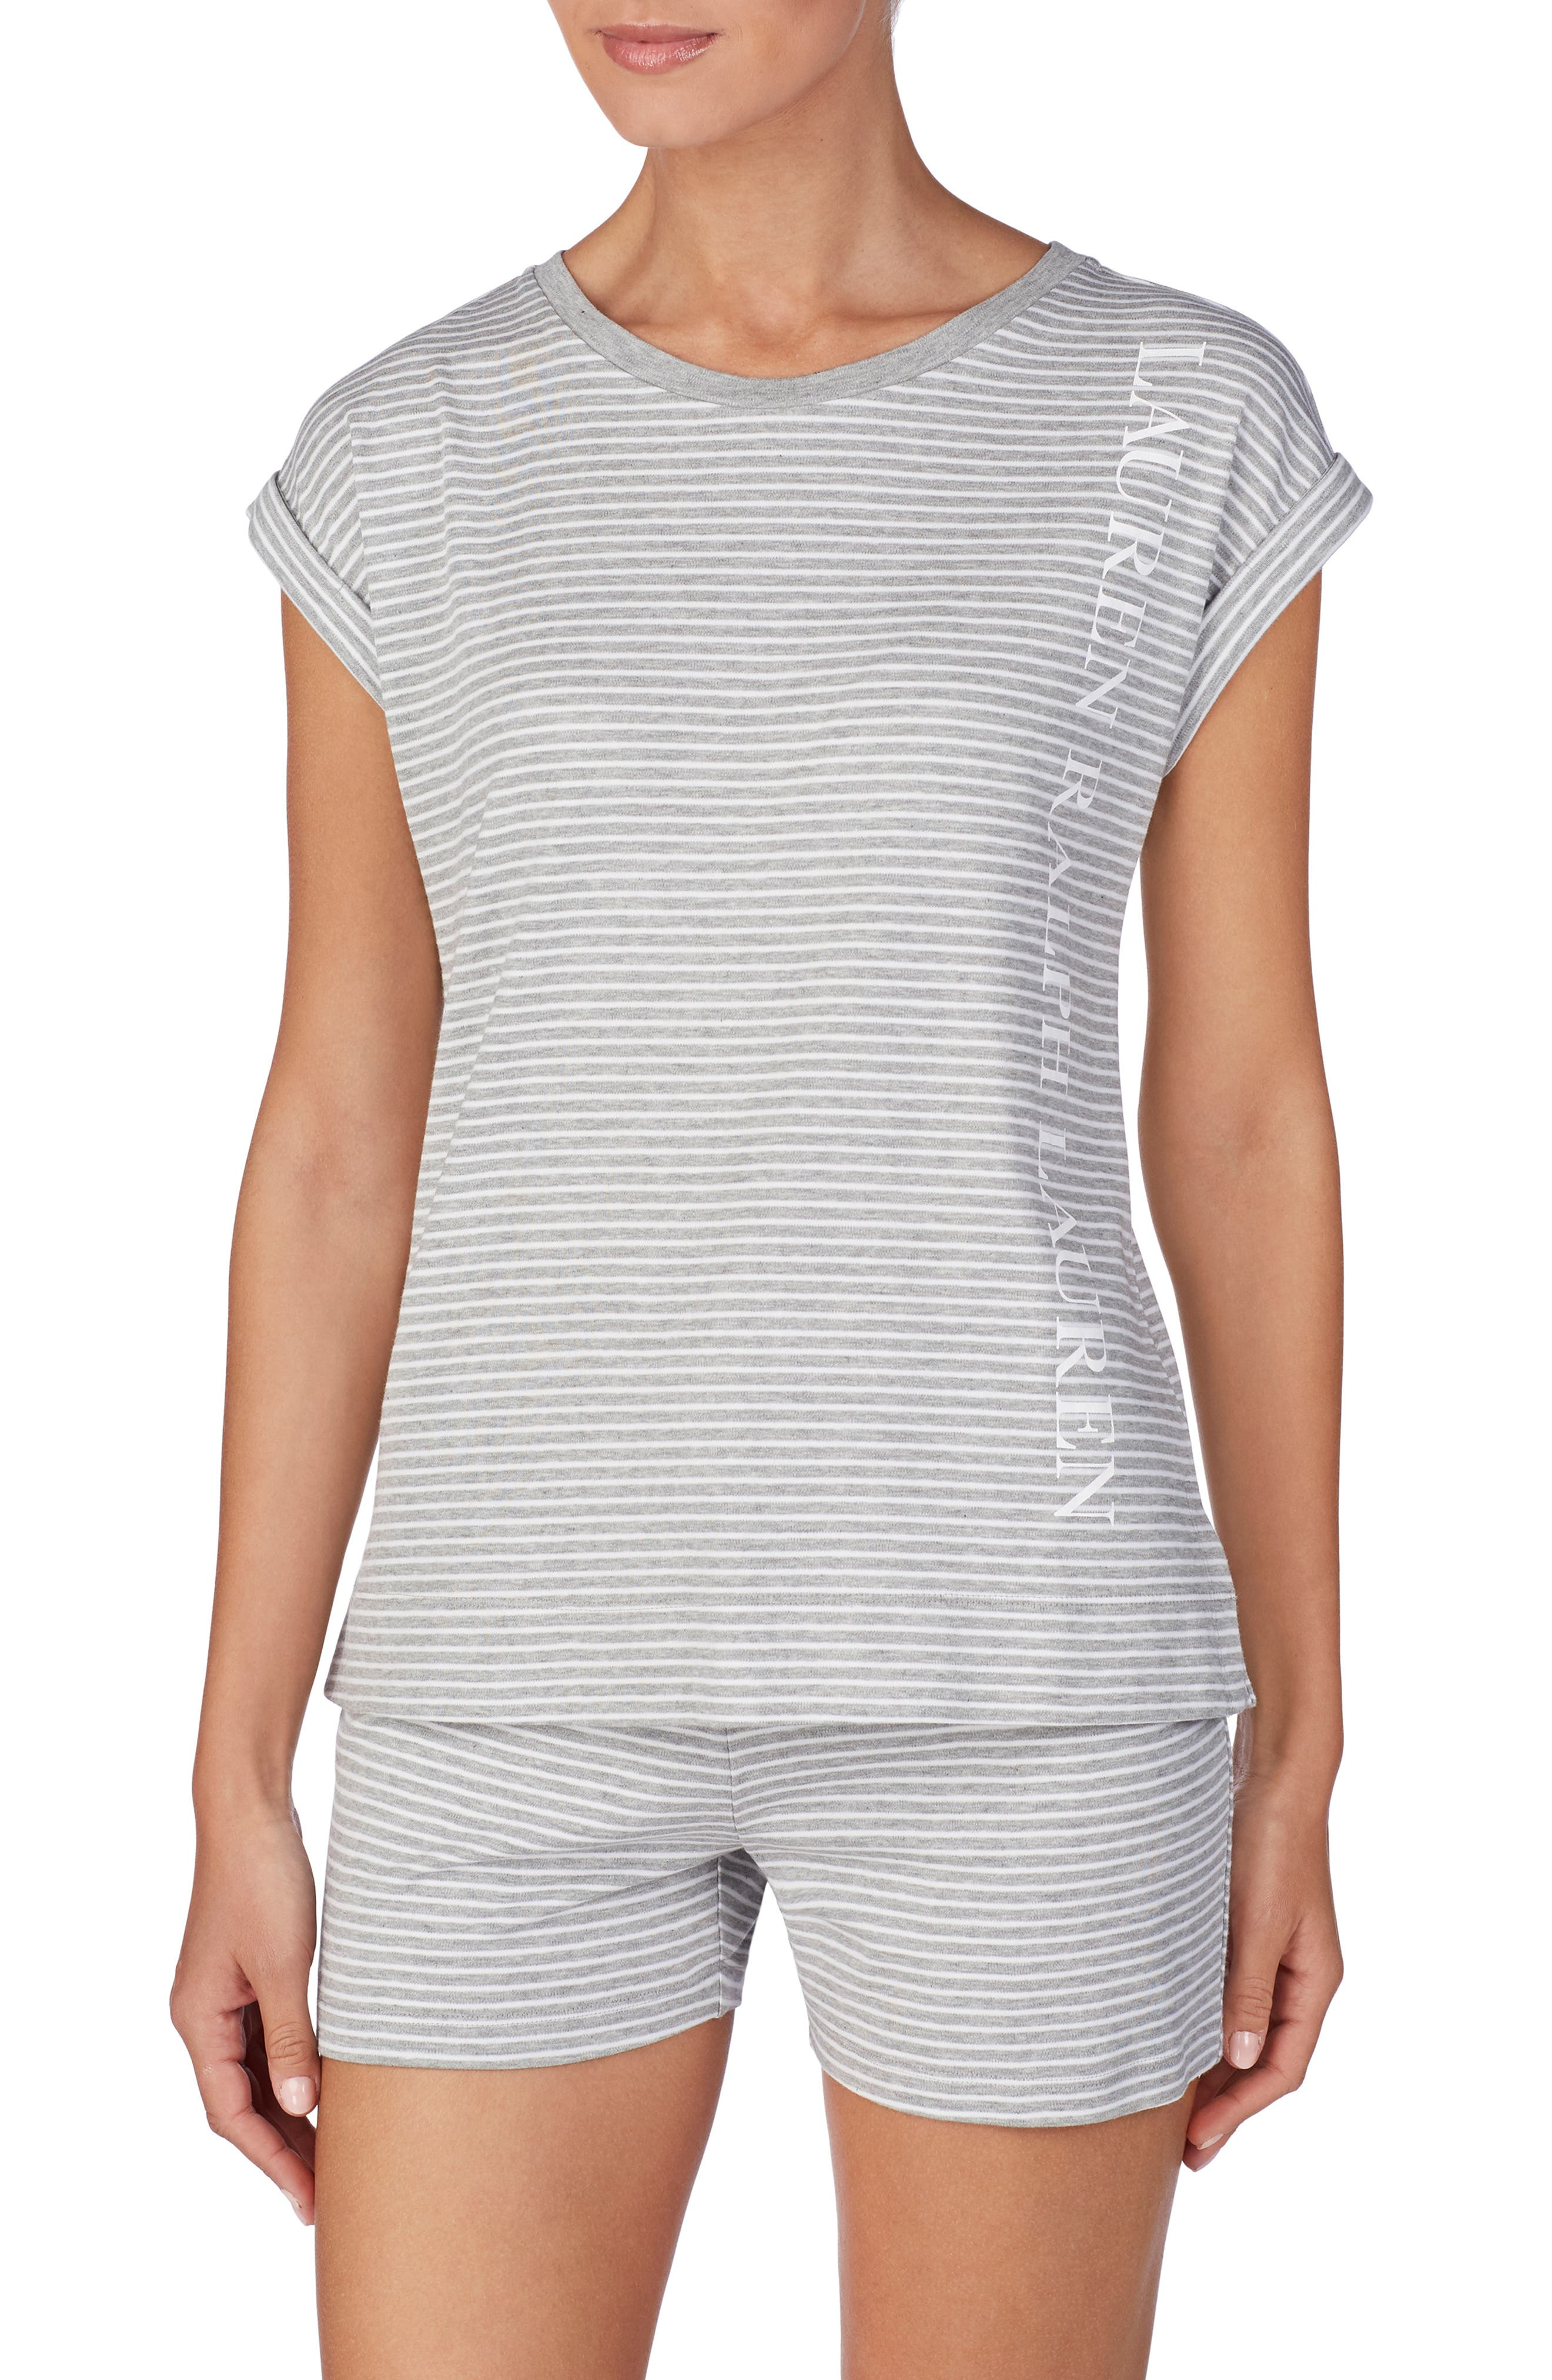 LAUREN RALPH LAUREN Knit Pajama Top, Main, color, GREY STRIPE